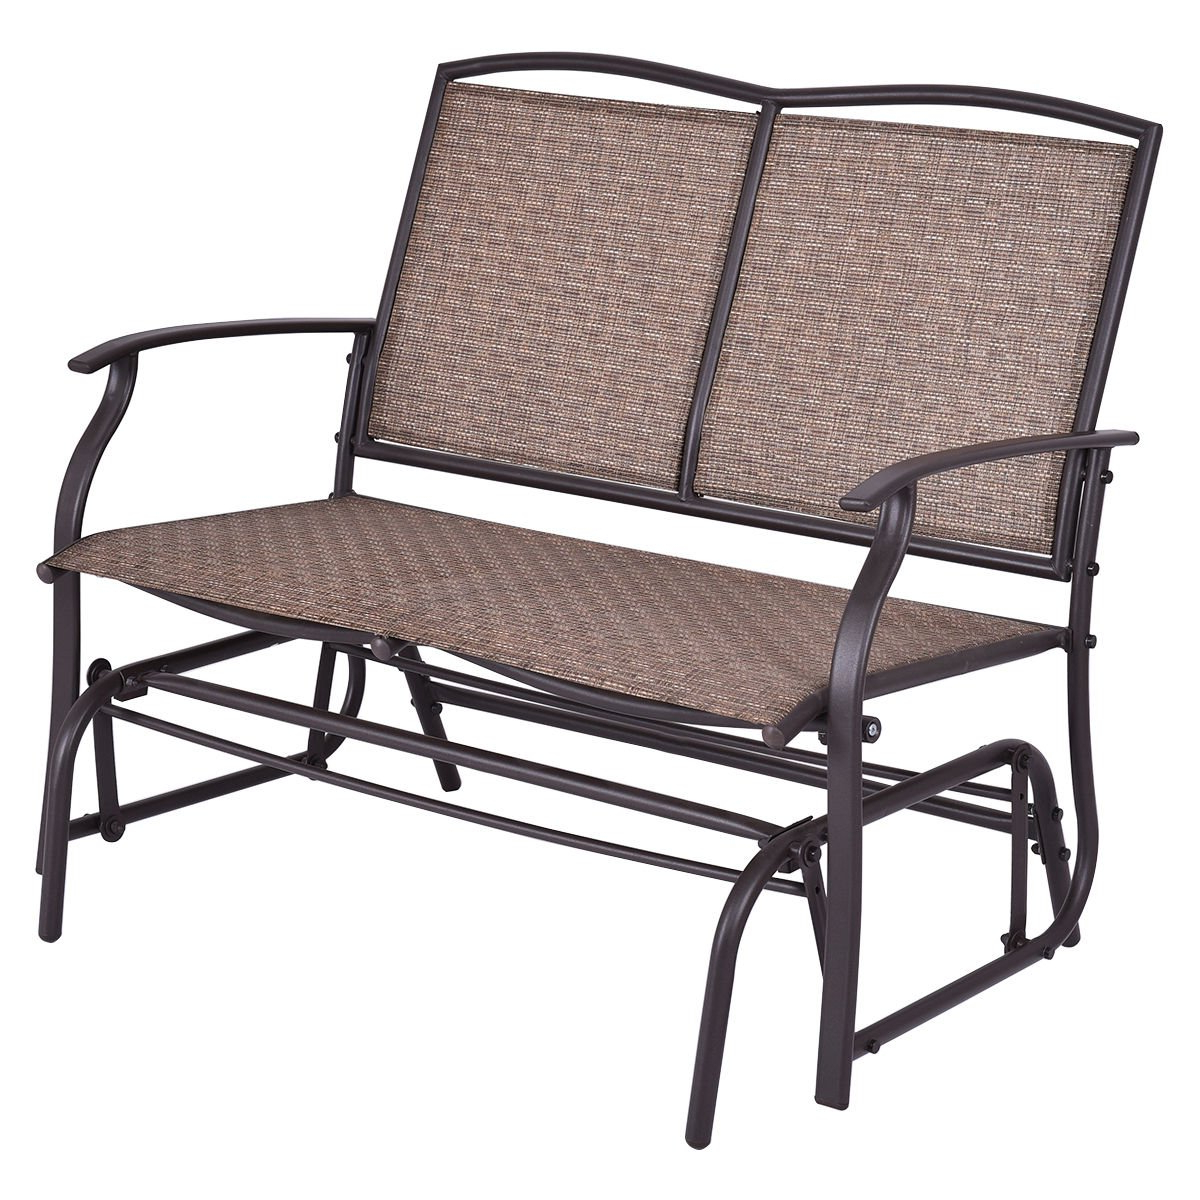 Iron Double Patio Glider Benches Intended For Best And Newest Amazon: Maximumstore – Patio Glider Rocking Bench Double (View 4 of 30)